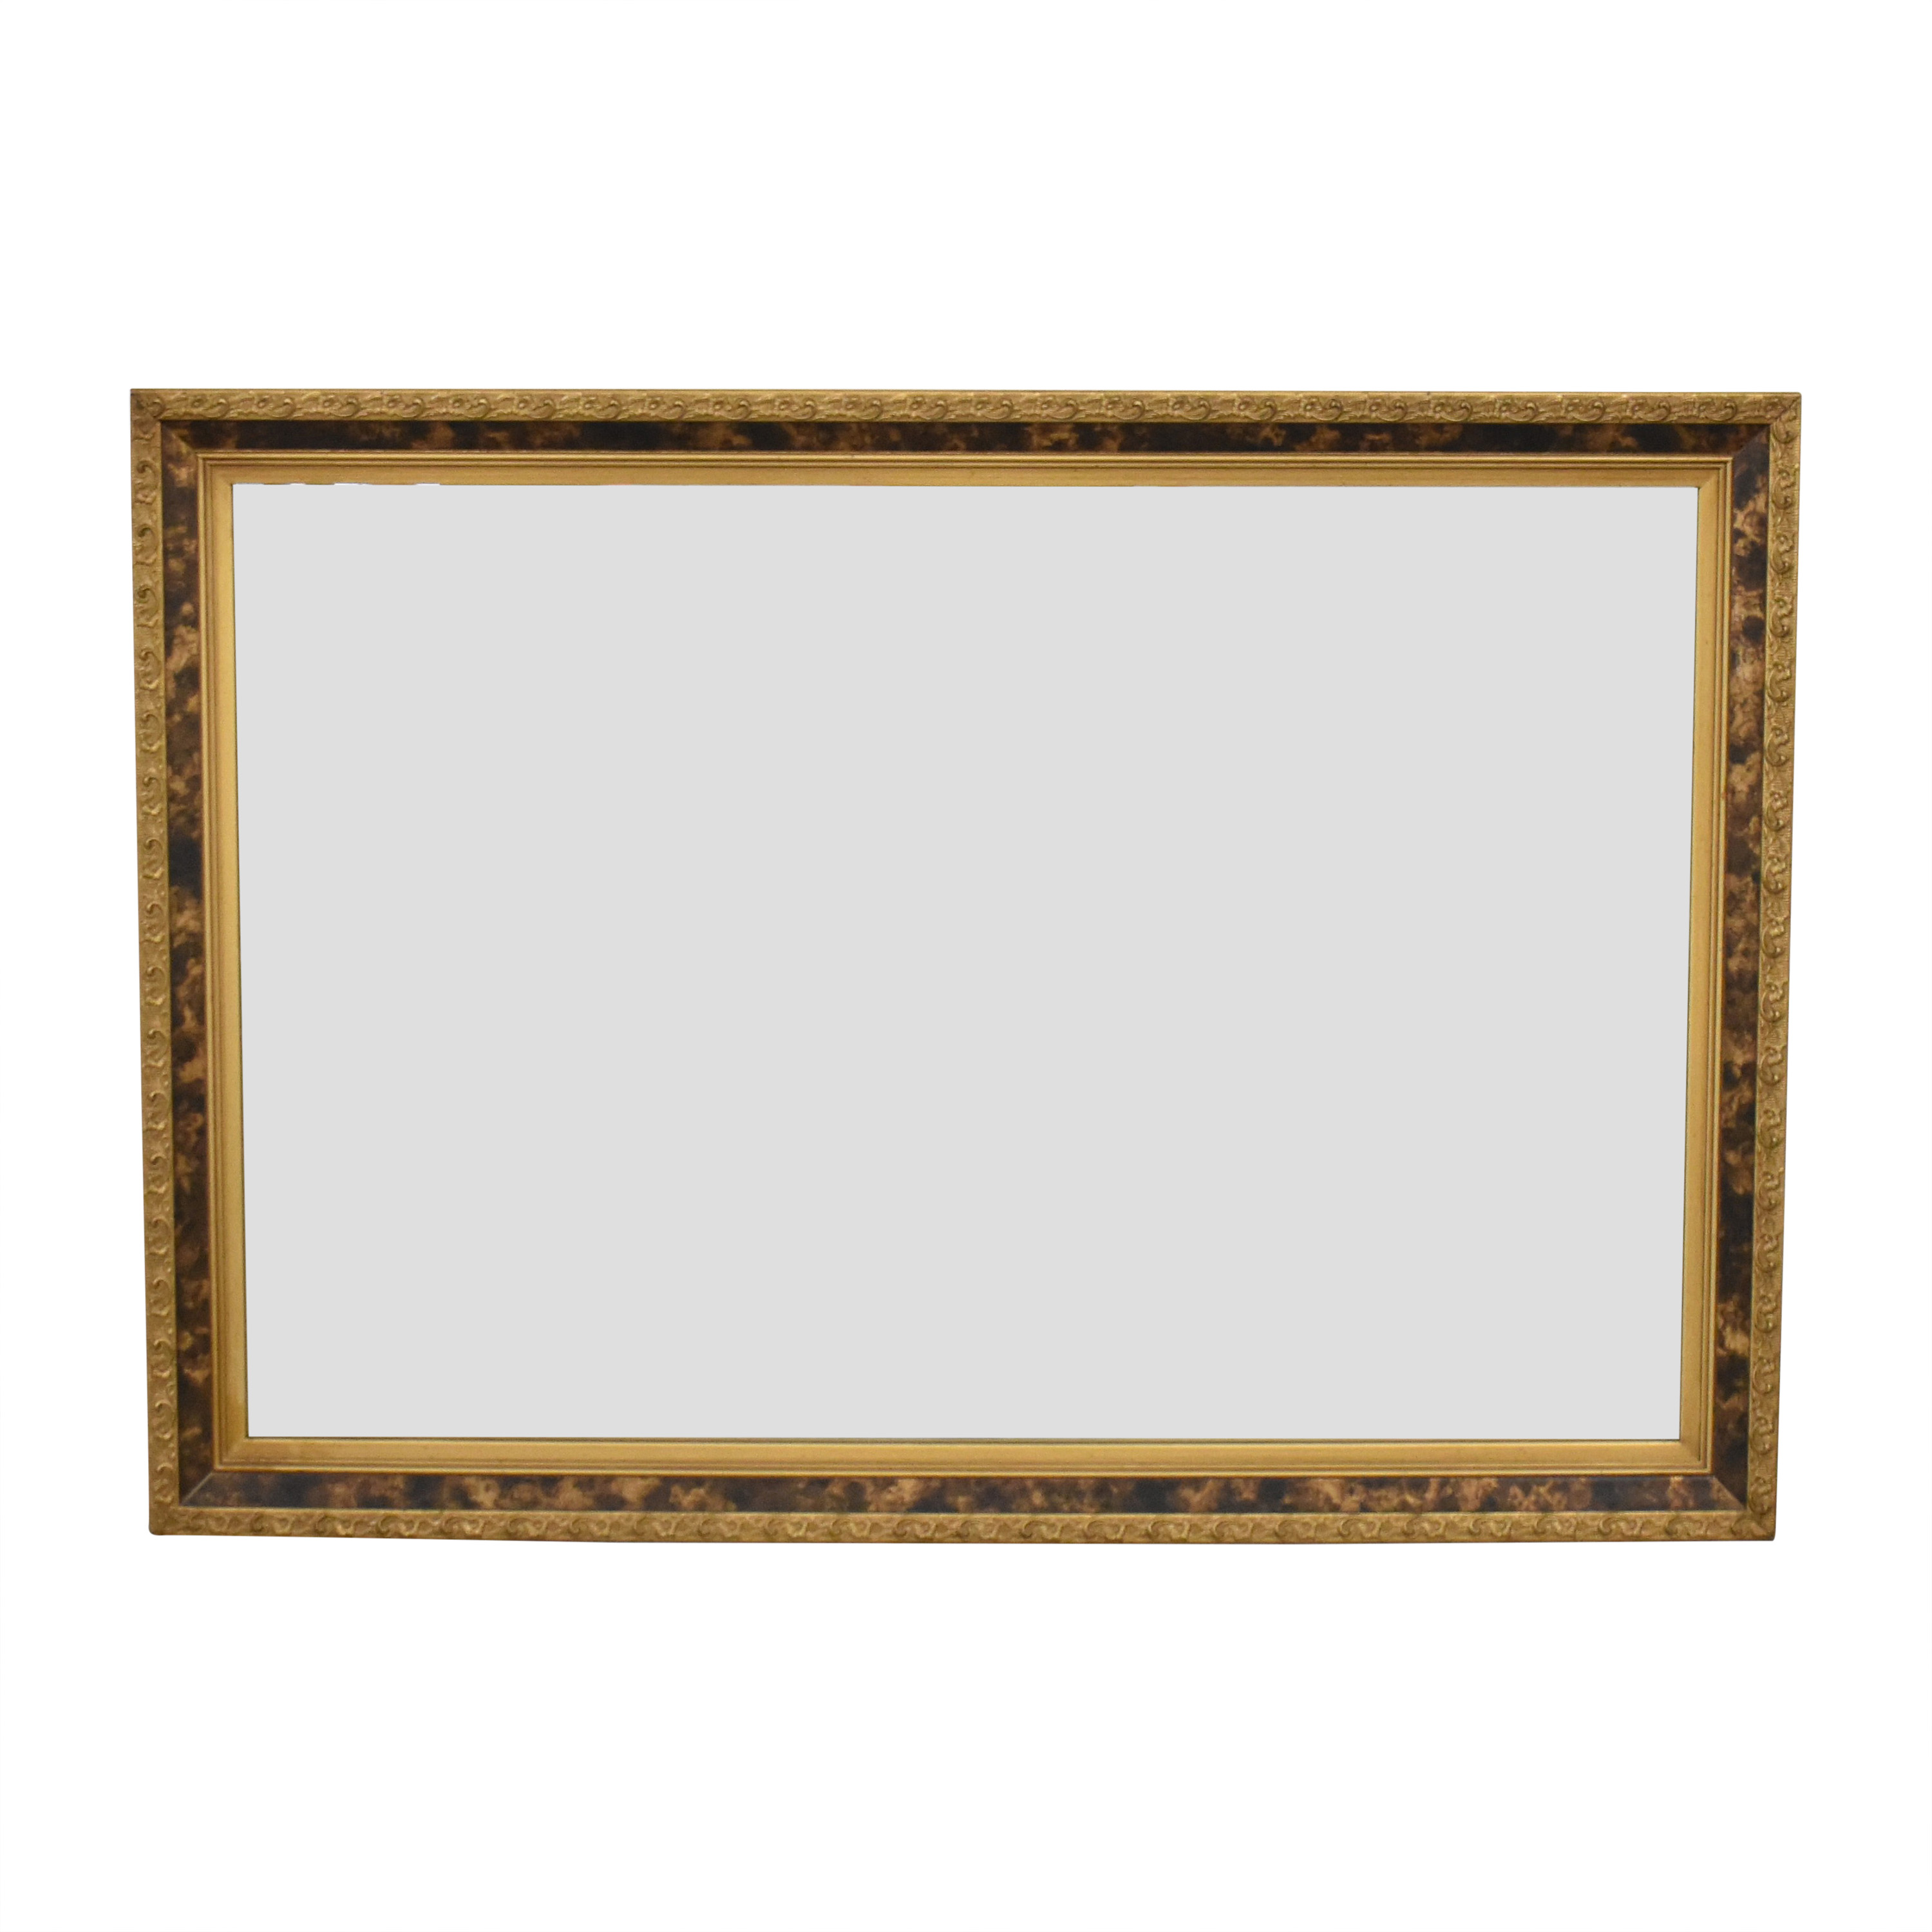 shop Turner Framed Wall Mirror Turner Mirrors